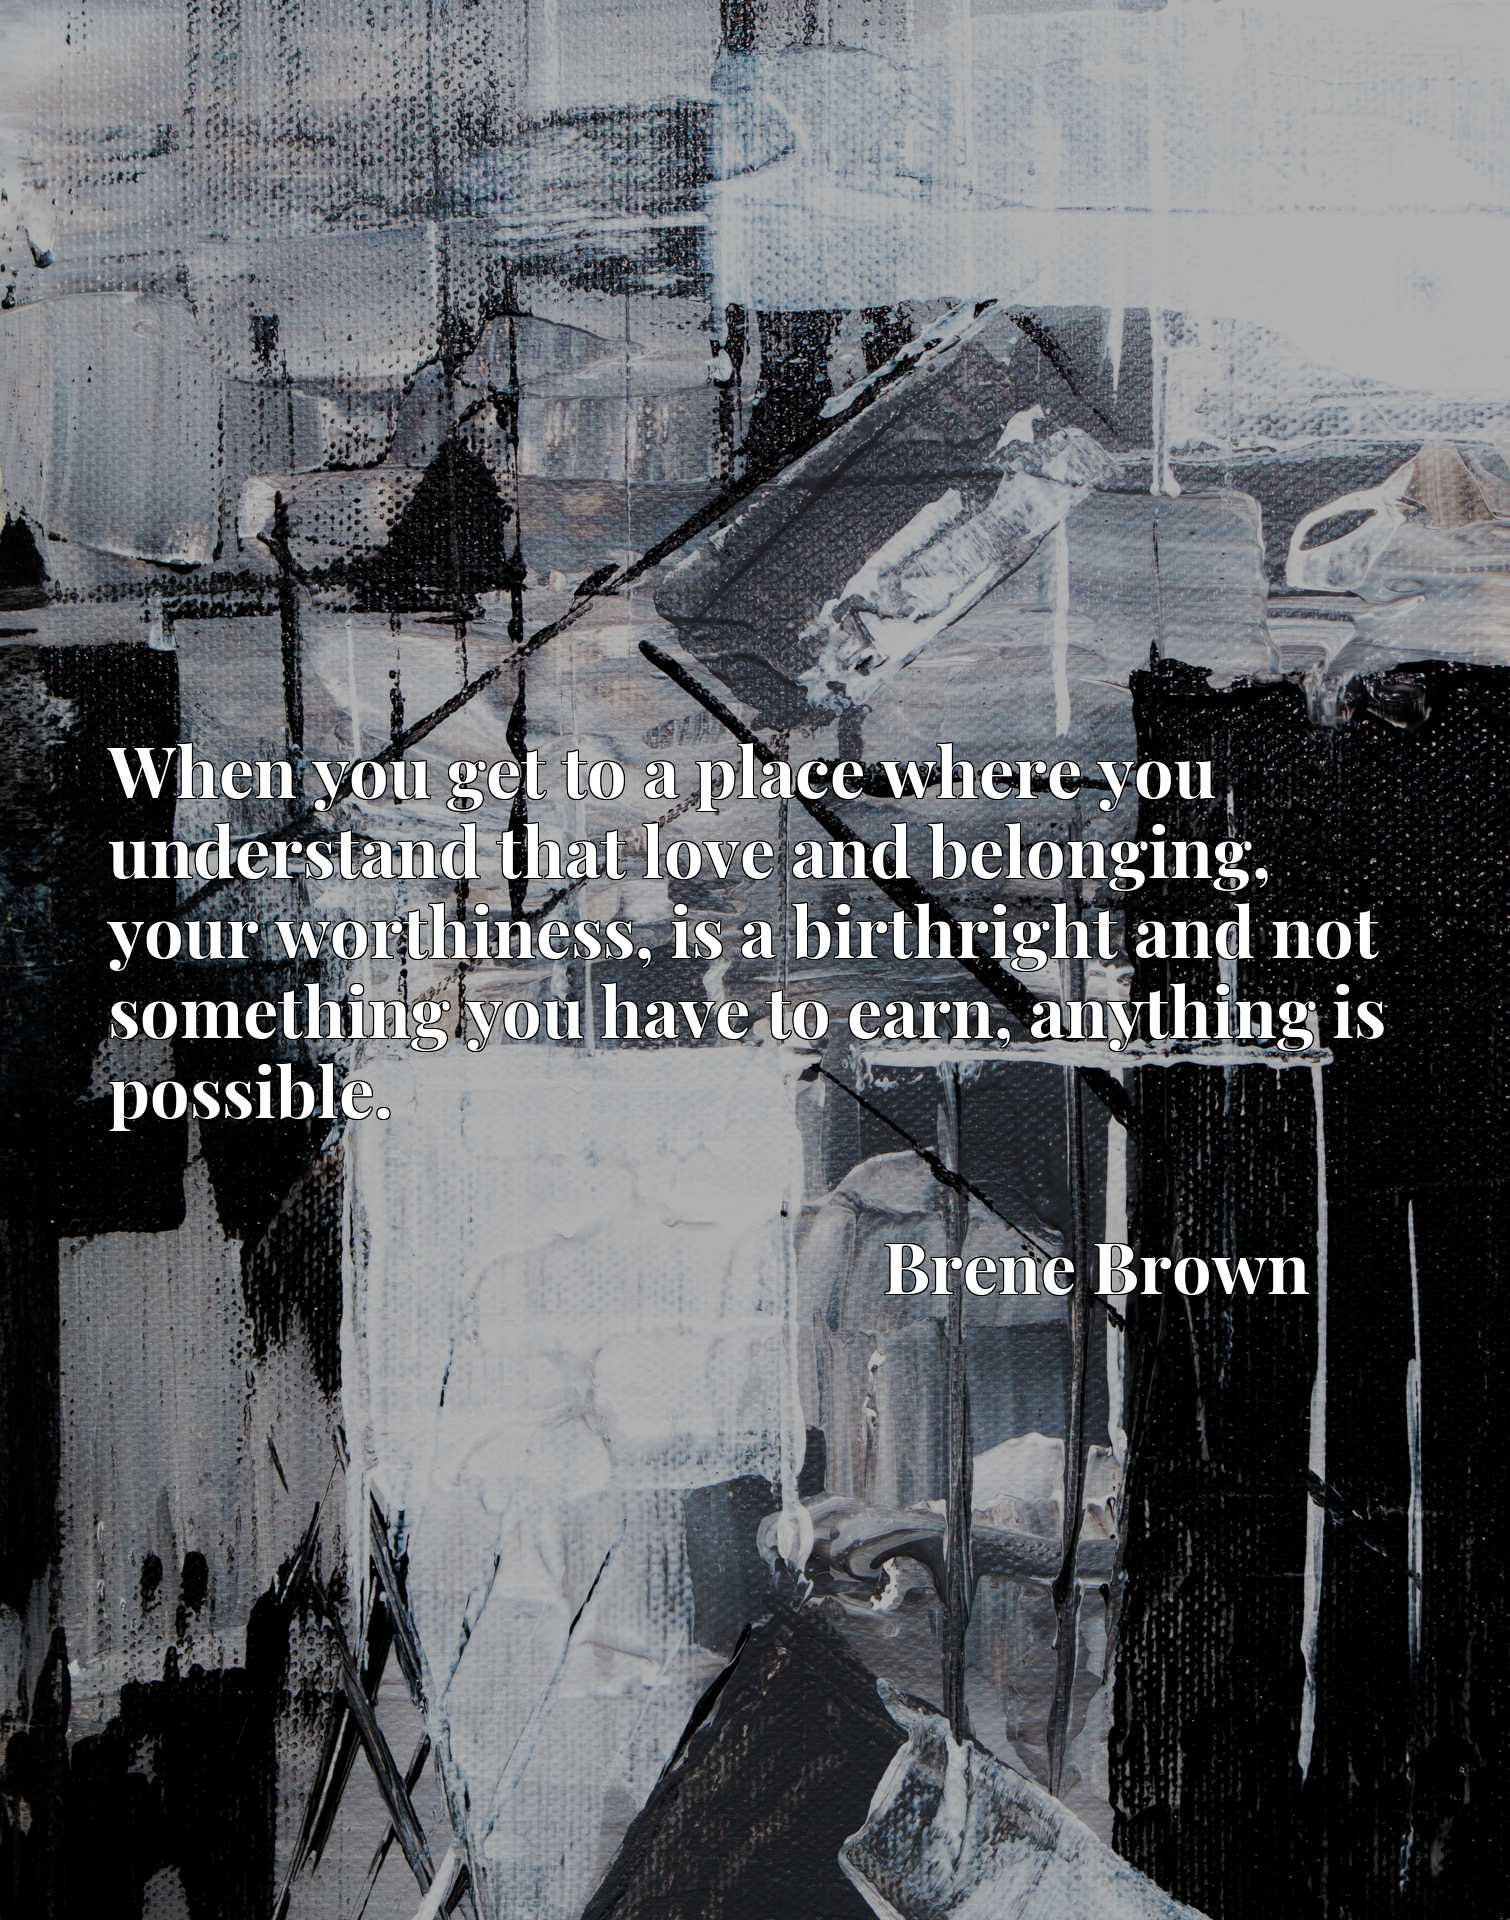 Quote Picture :When you get to a place where you understand that love and belonging, your worthiness, is a birthright and not something you have to earn, anything is possible.